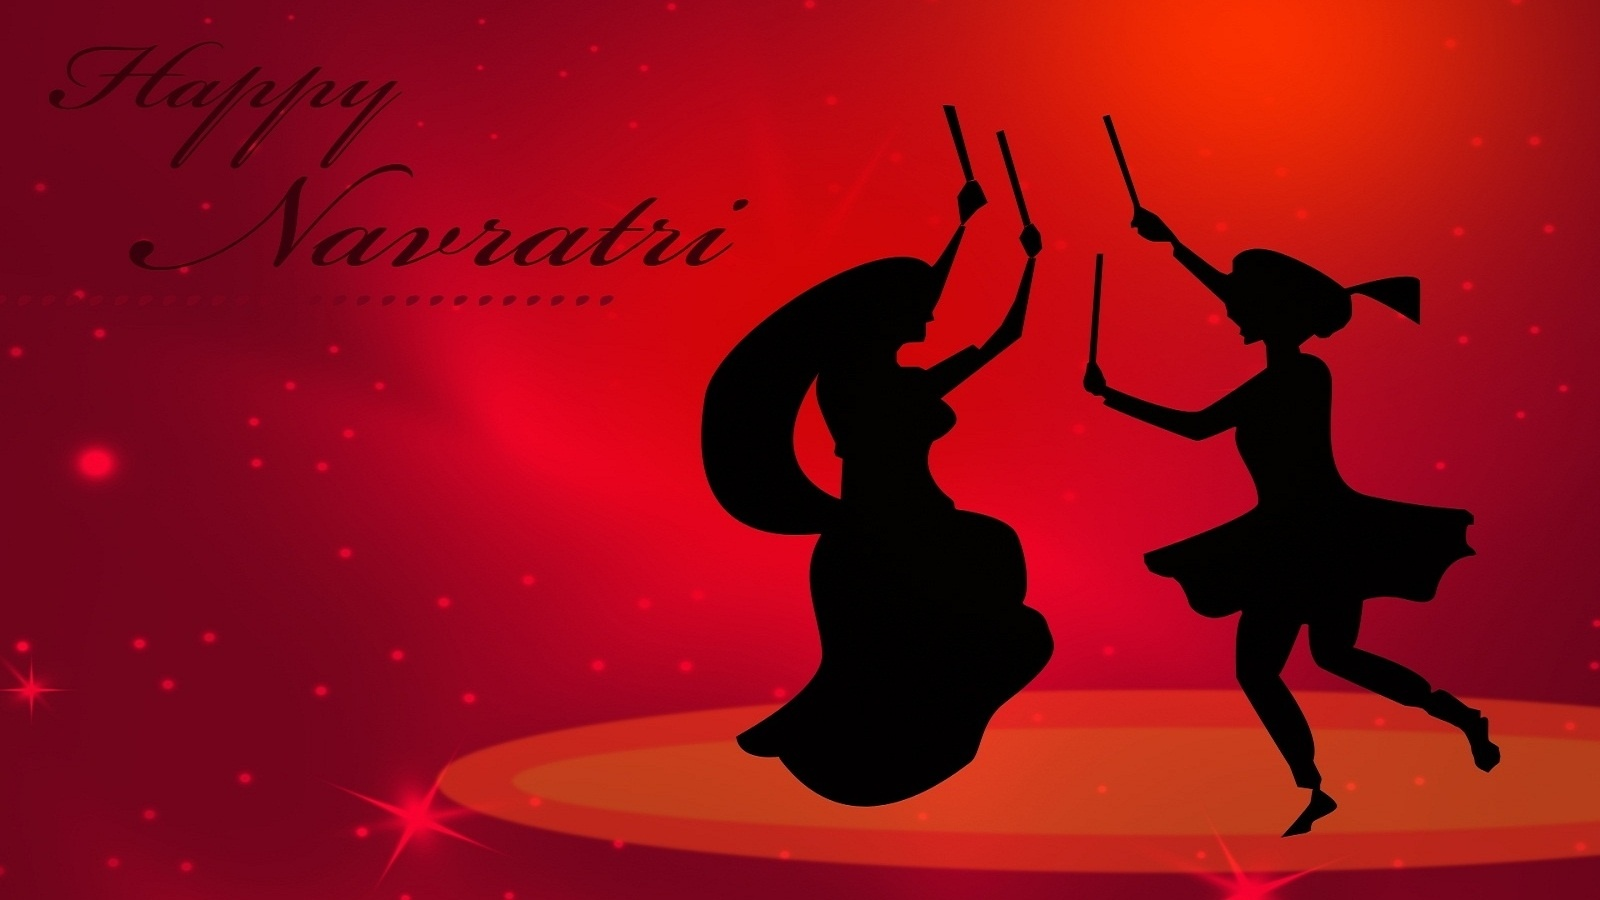 Os X Wallpapers Hd Navratri Garba Couple Wallpapers 1600x900 196479